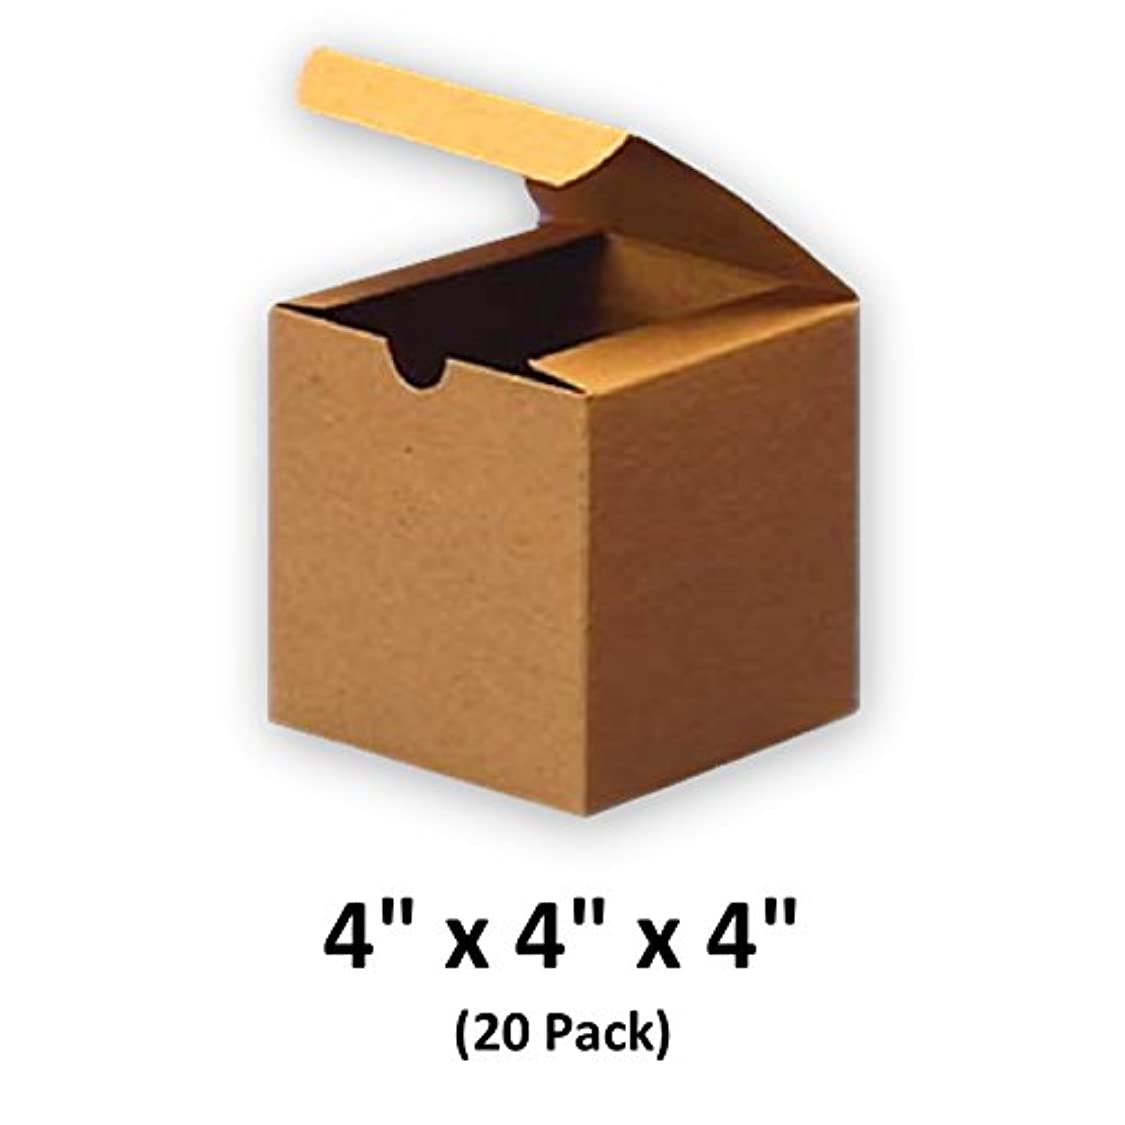 Brown Cardboard Kraft Tuck Top Gift Boxes with Lids, 4x4x4 (20 Pack) for Gifts, Crafting & Cupcakes   MagicWater Supply ei79249450606457